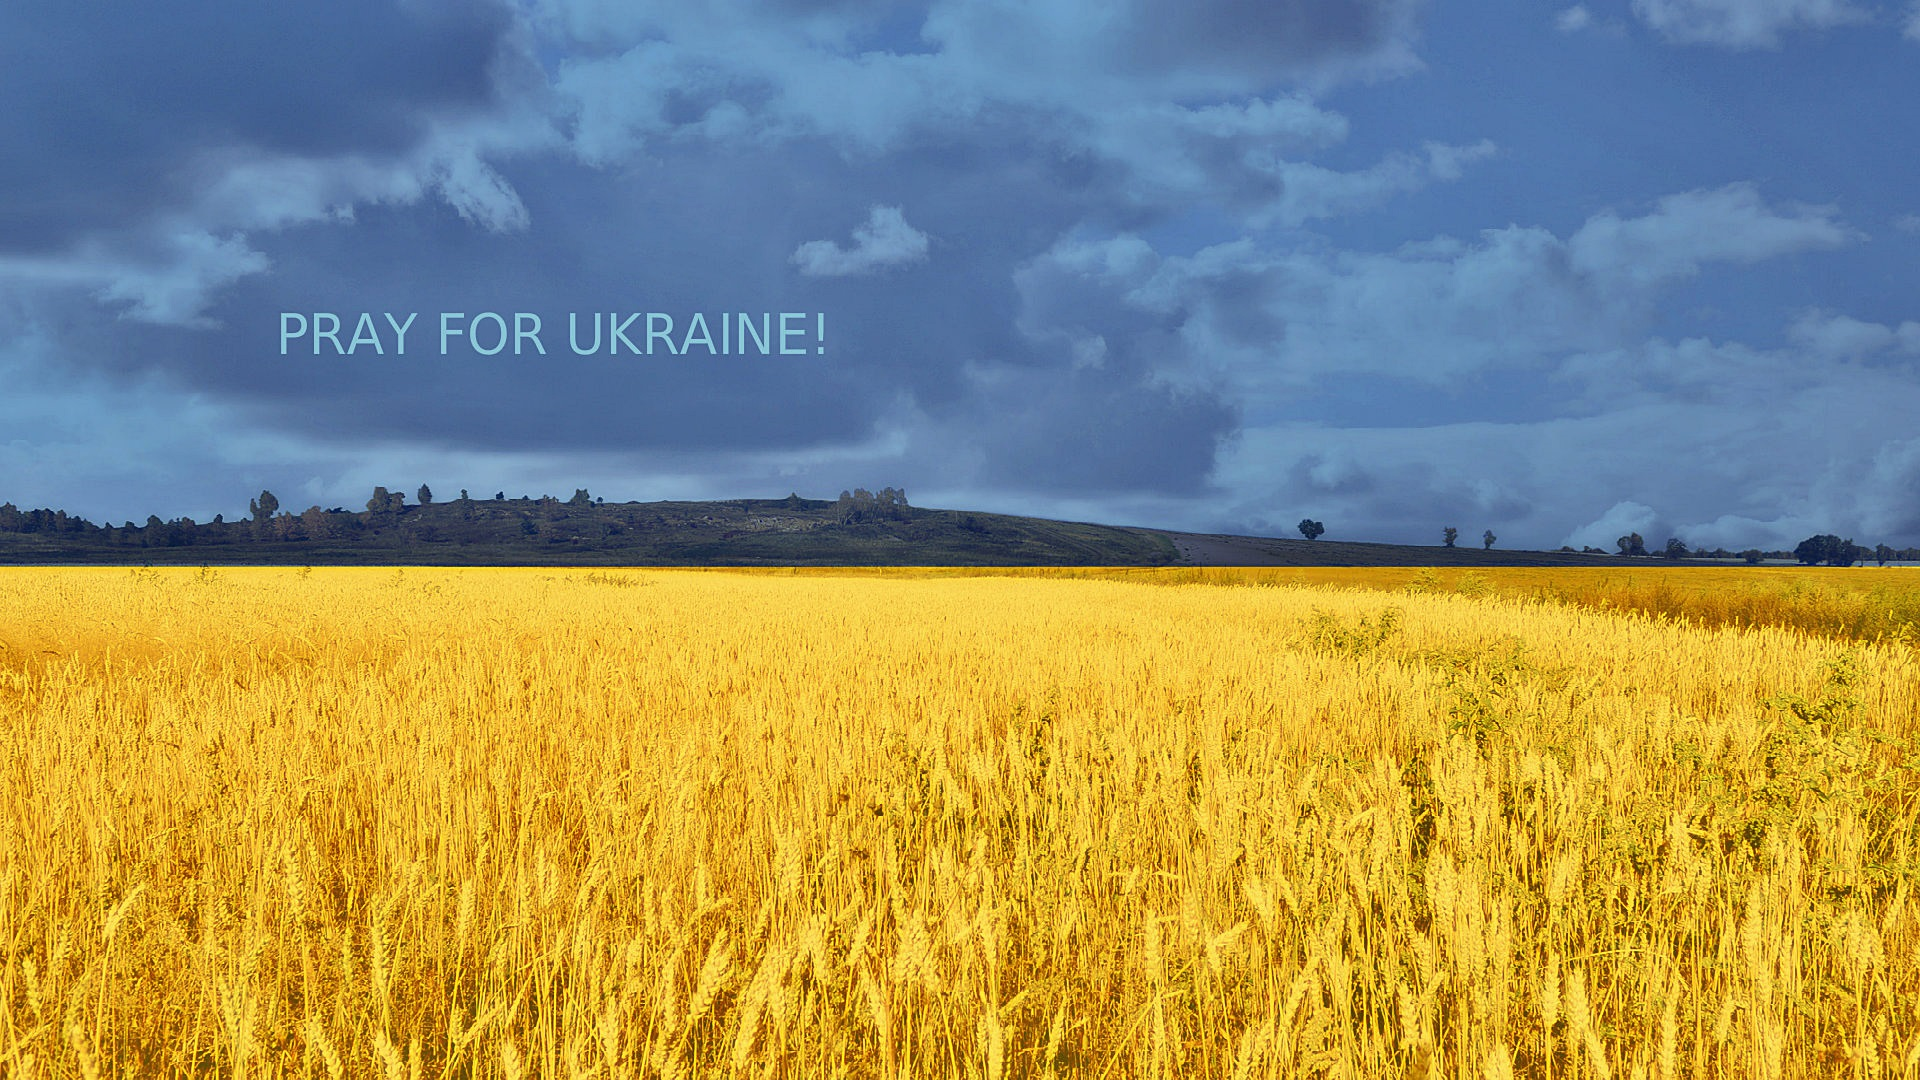 Ukraine Wallpaper